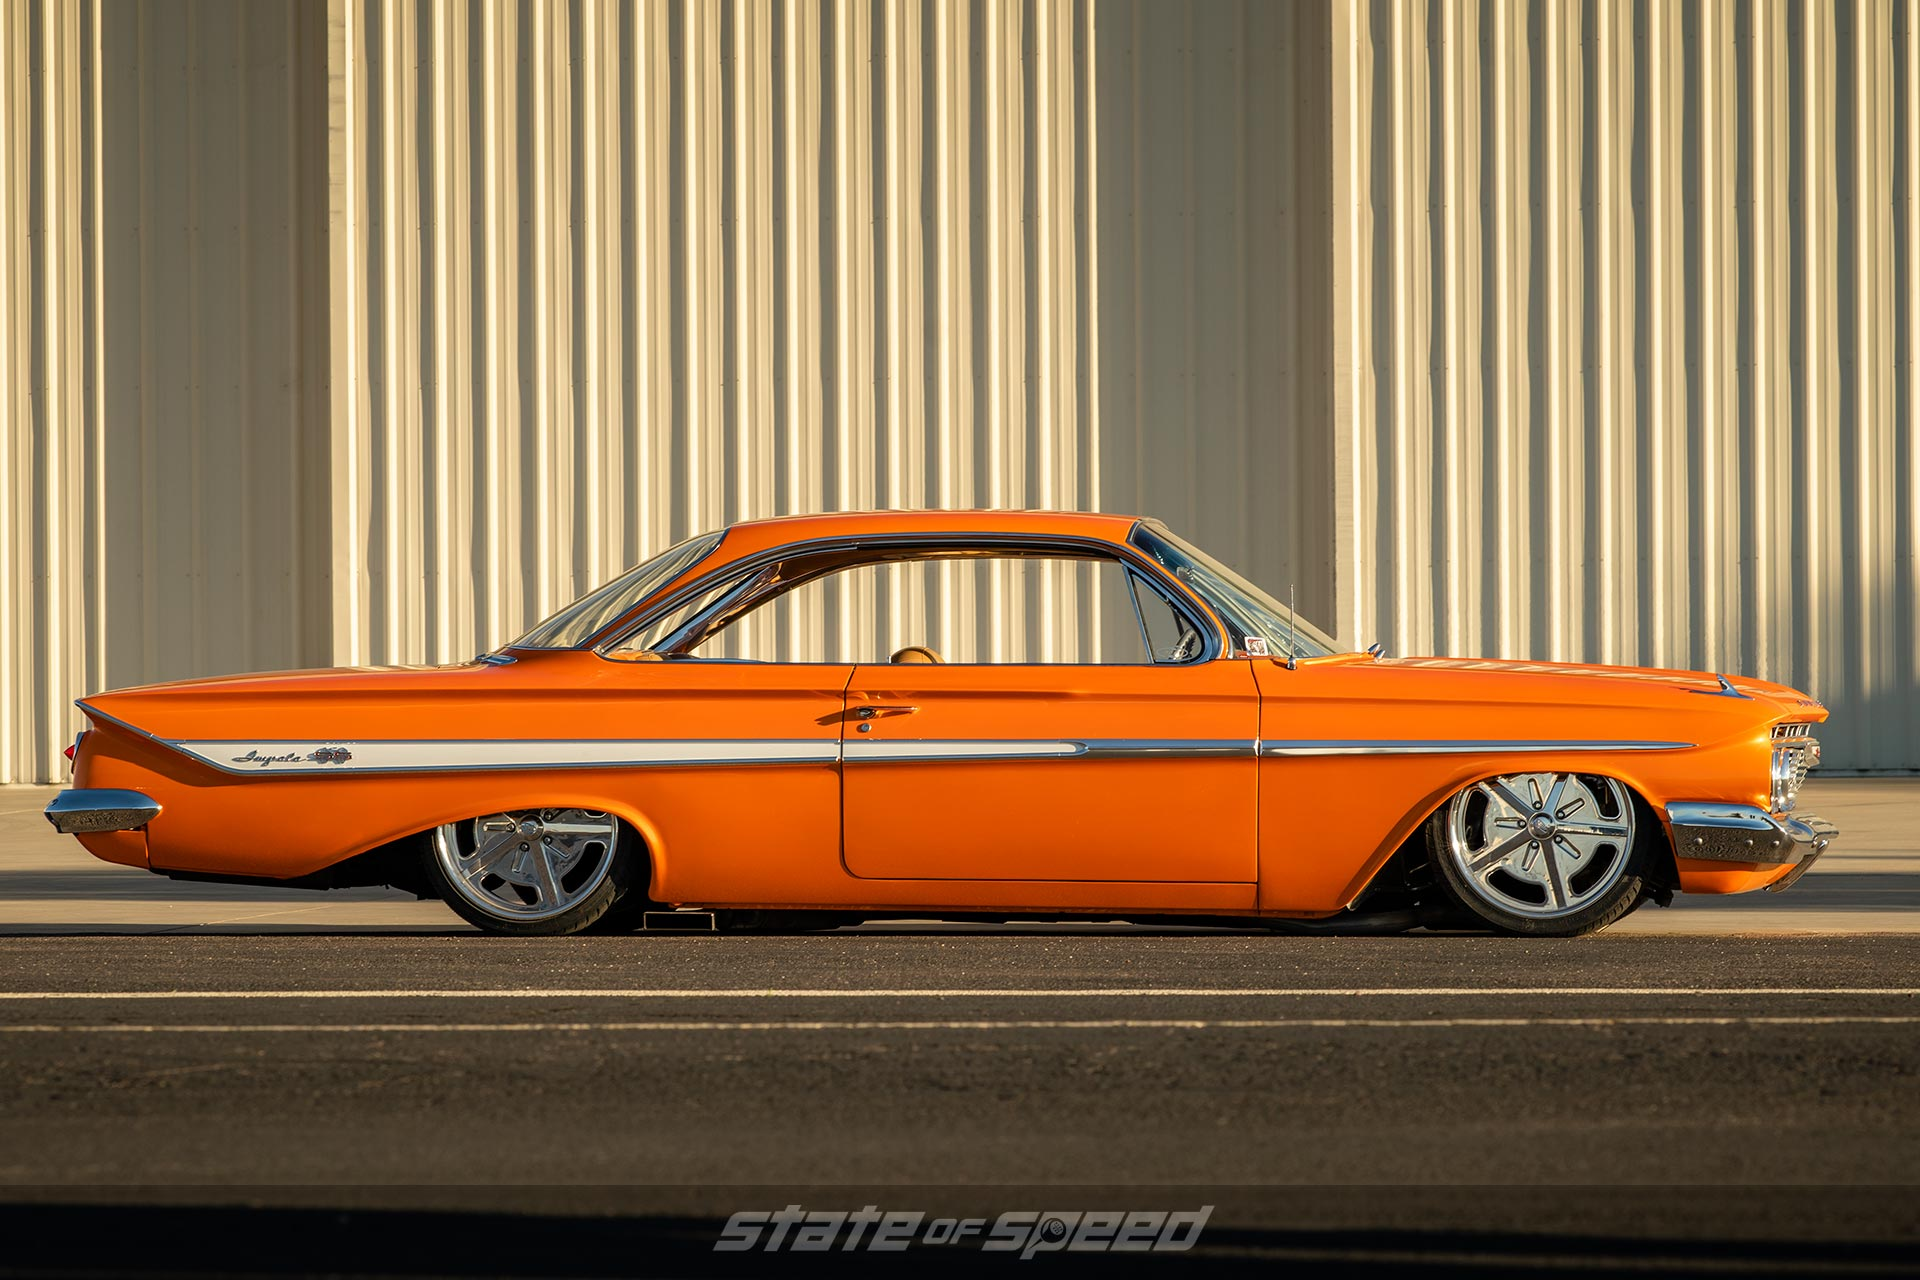 Orange Impala slammed and bagged